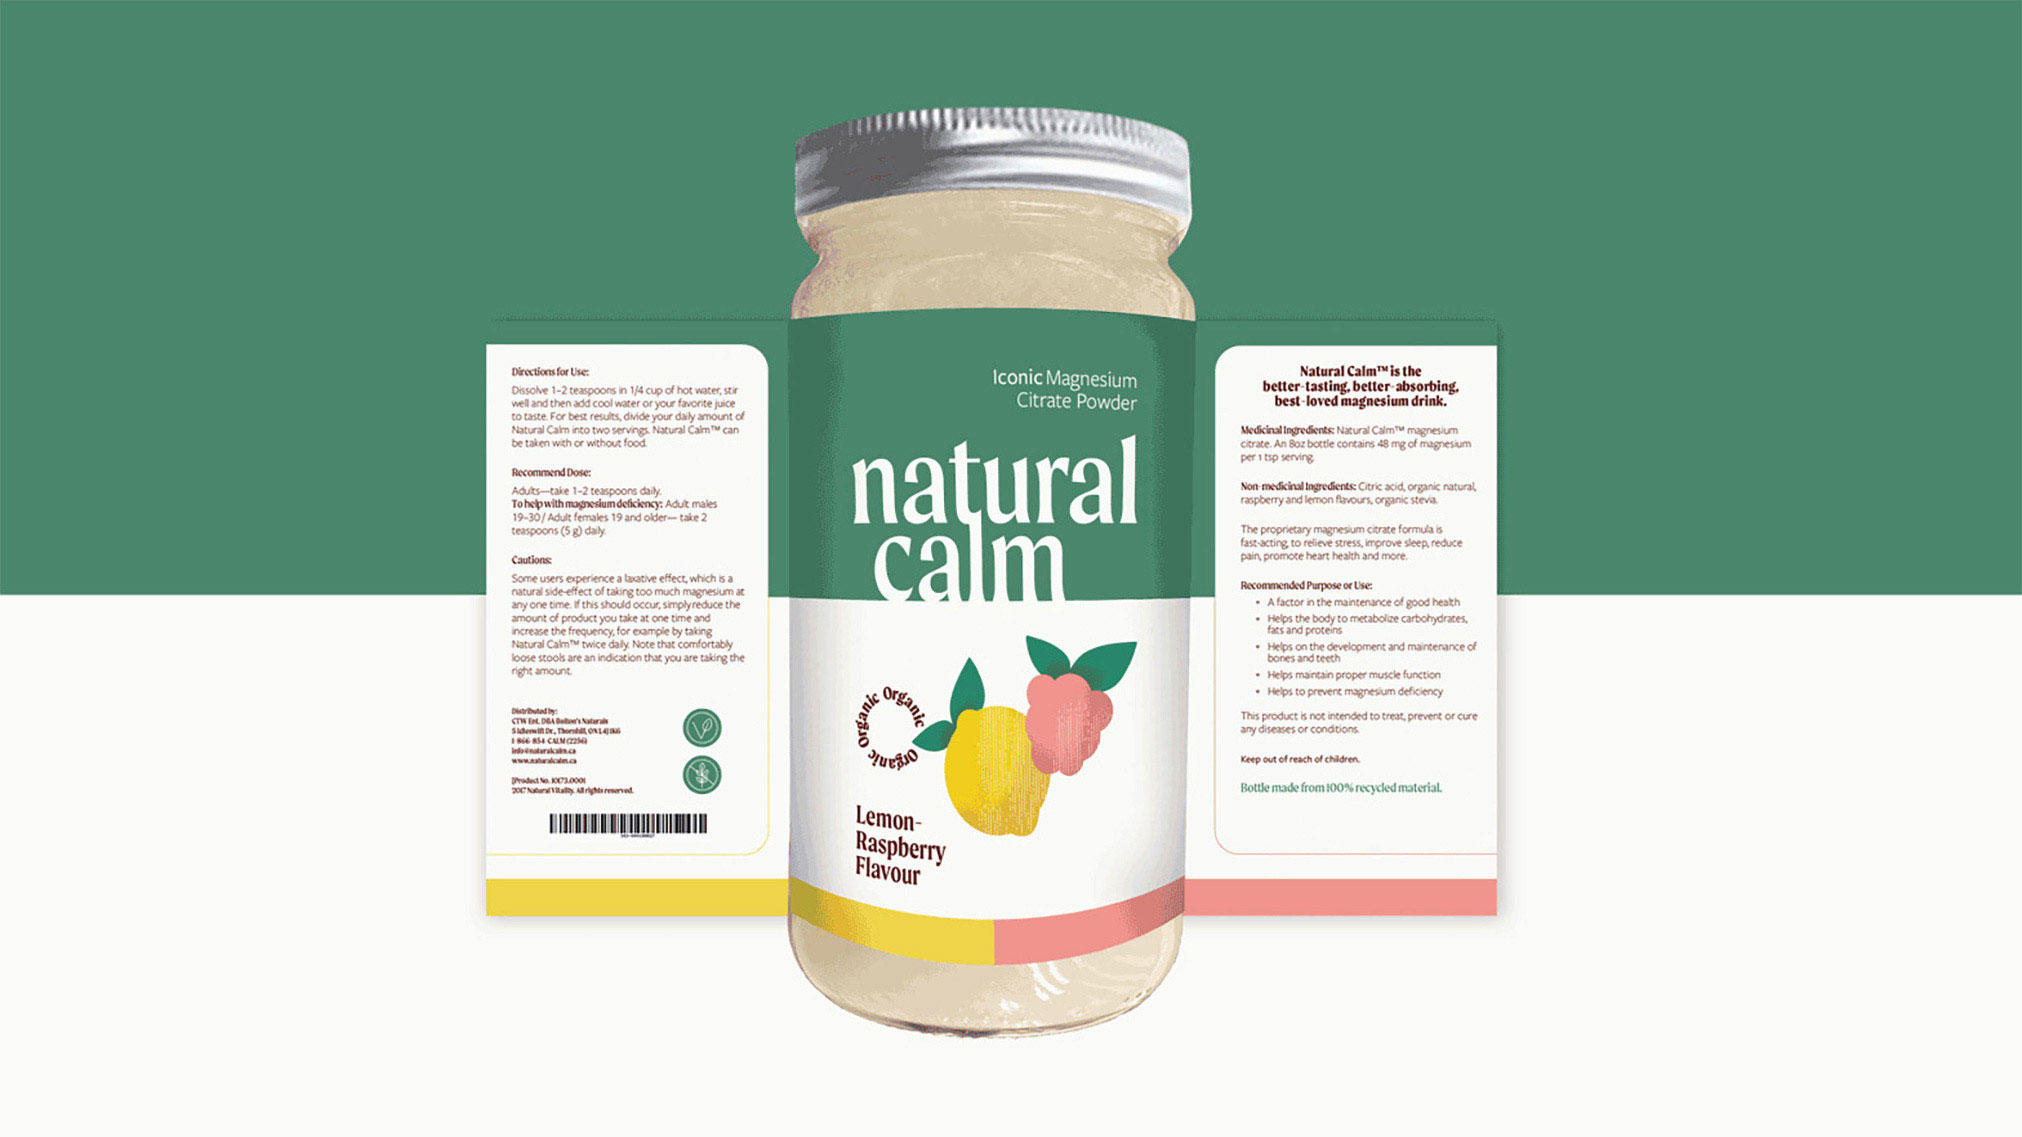 Rebranding of the Natural Calm brand with a more sustainable glass packaging solution and new package design.